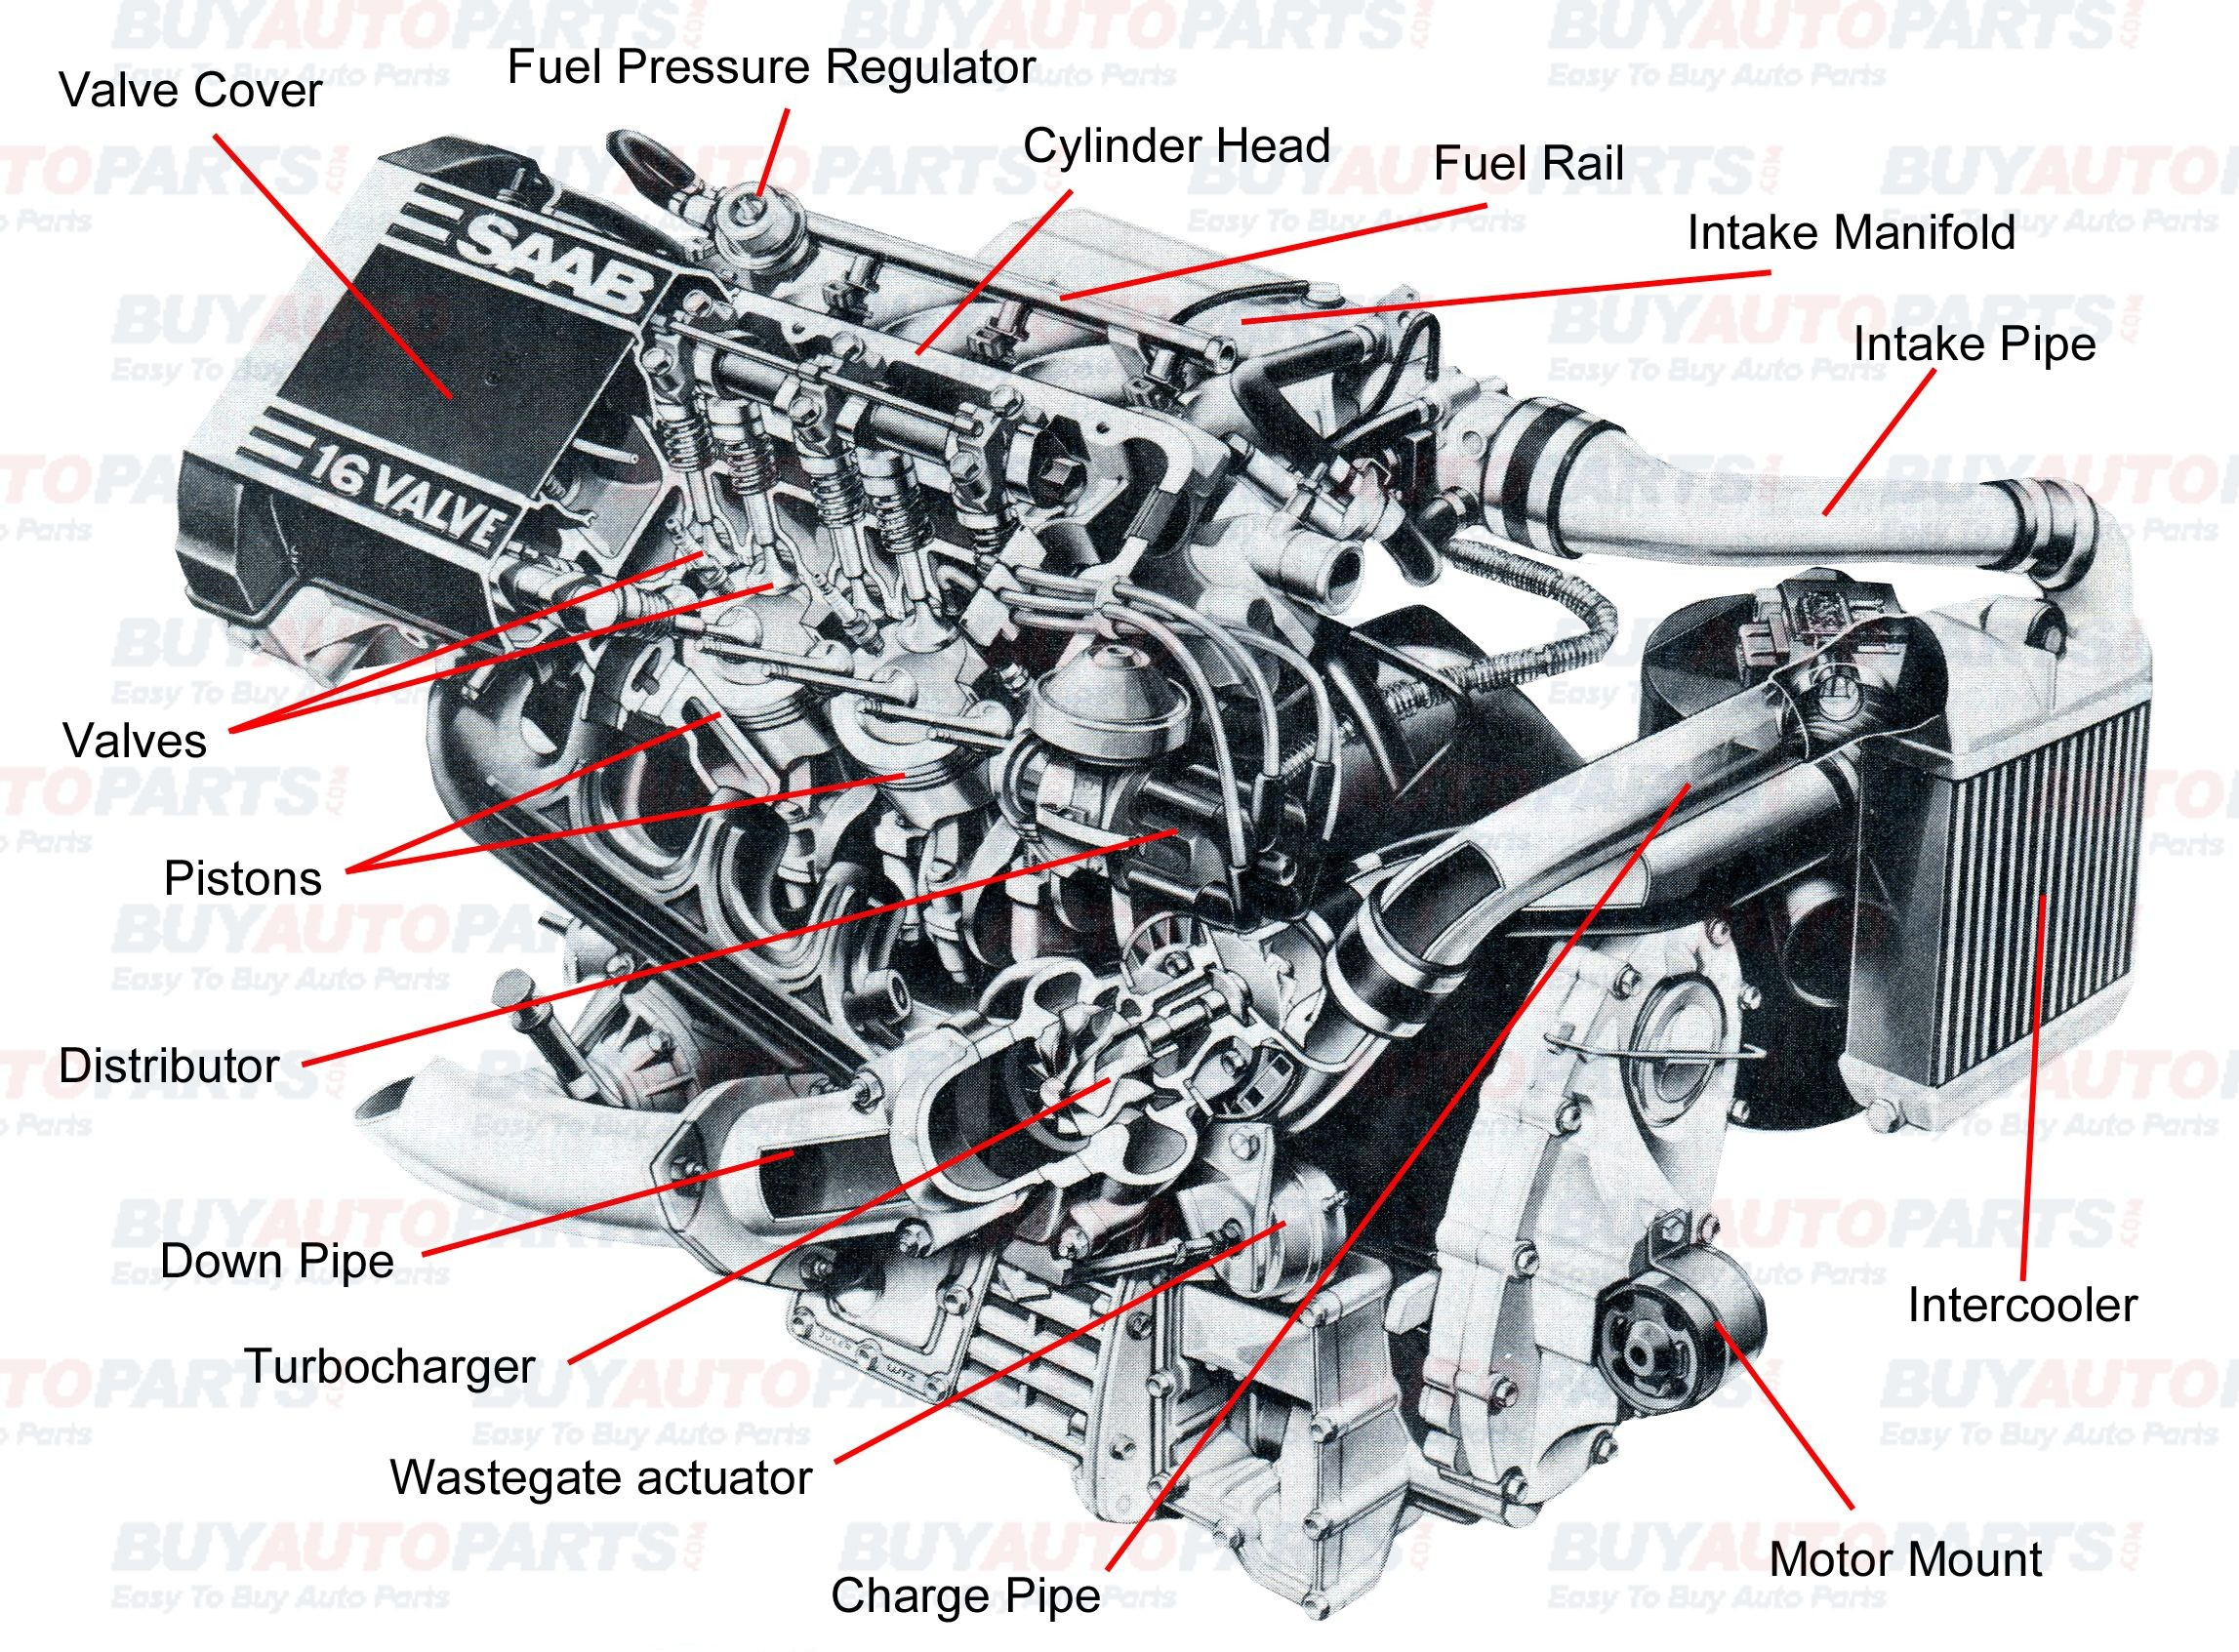 Car Engine Parts and Functions Diagram Pin by Jimmiejanet Testellamwfz On What Does An Engine with Turbo Of Car Engine Parts and Functions Diagram